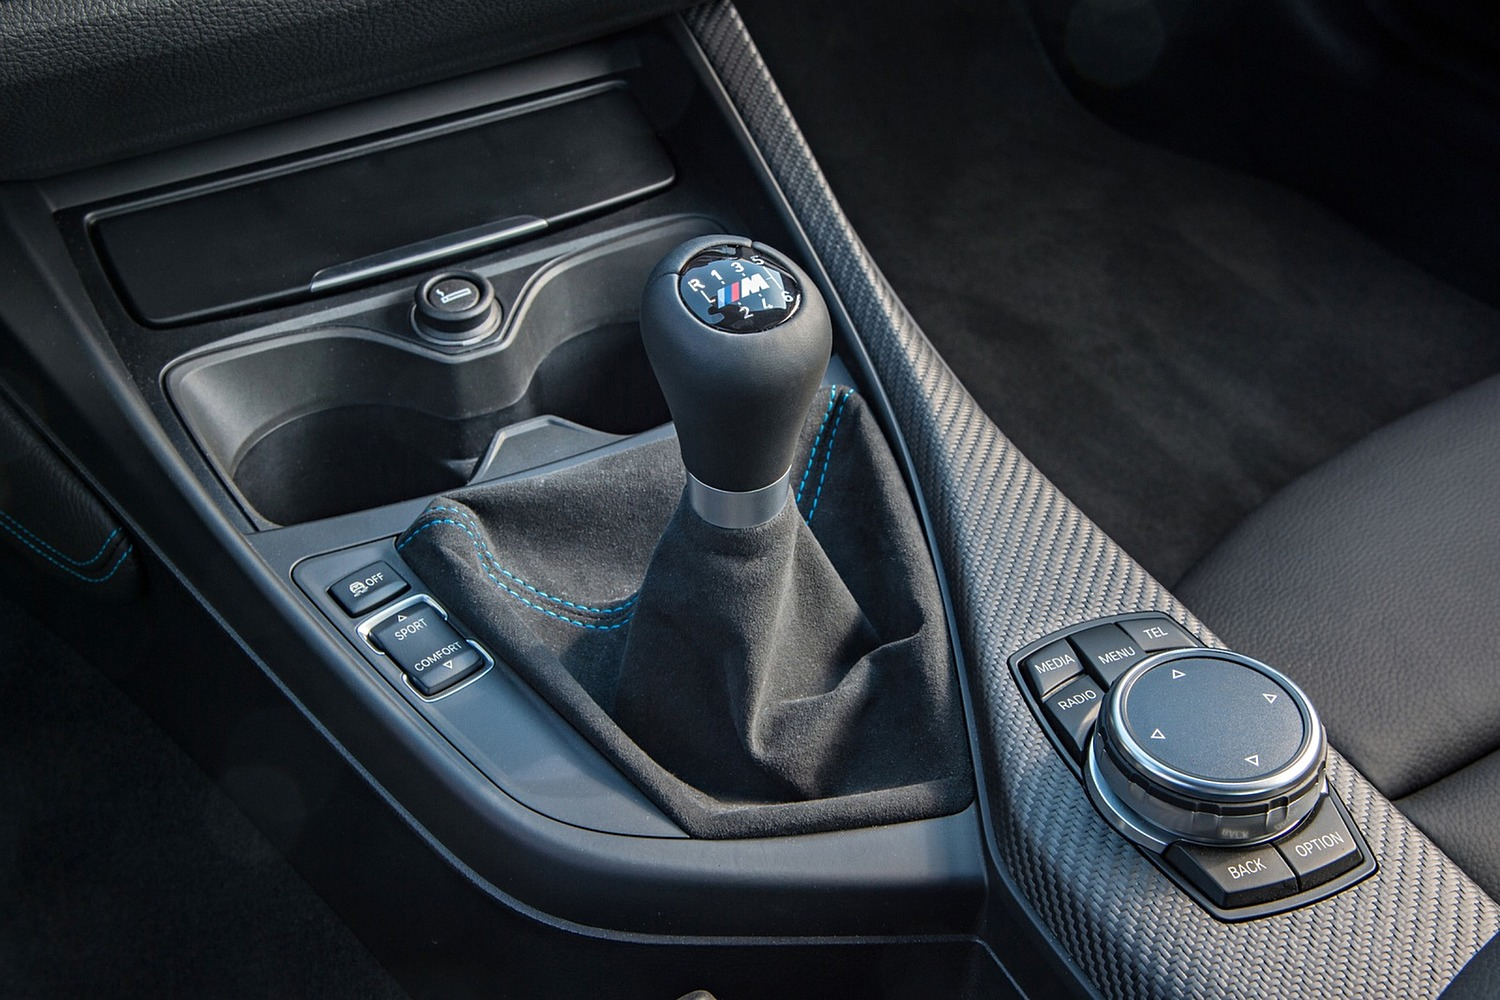 BMW M2 Coupe Shifter (2016 model year shown)